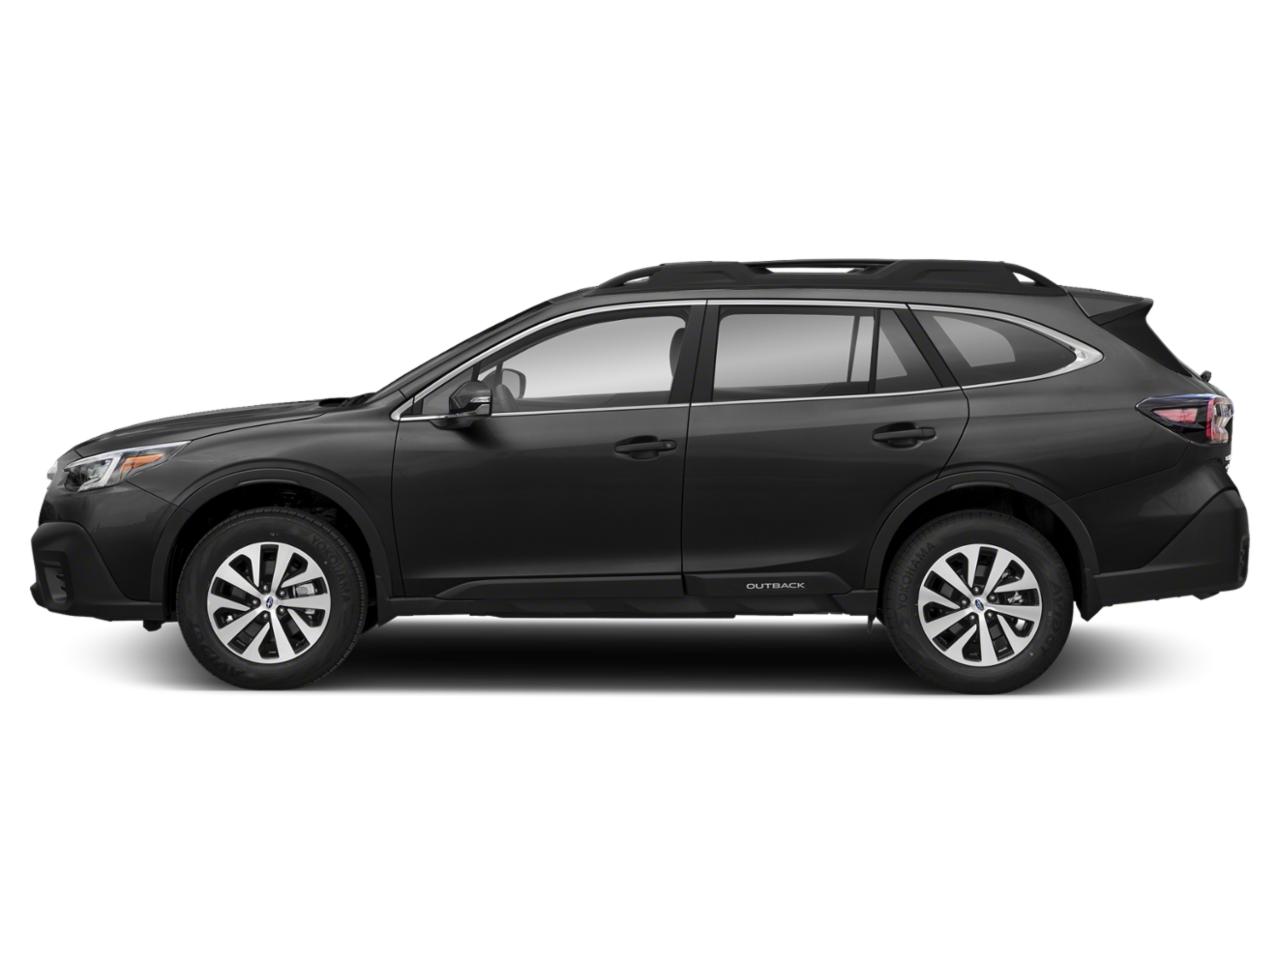 New 2020 Subaru Outback Limited XT